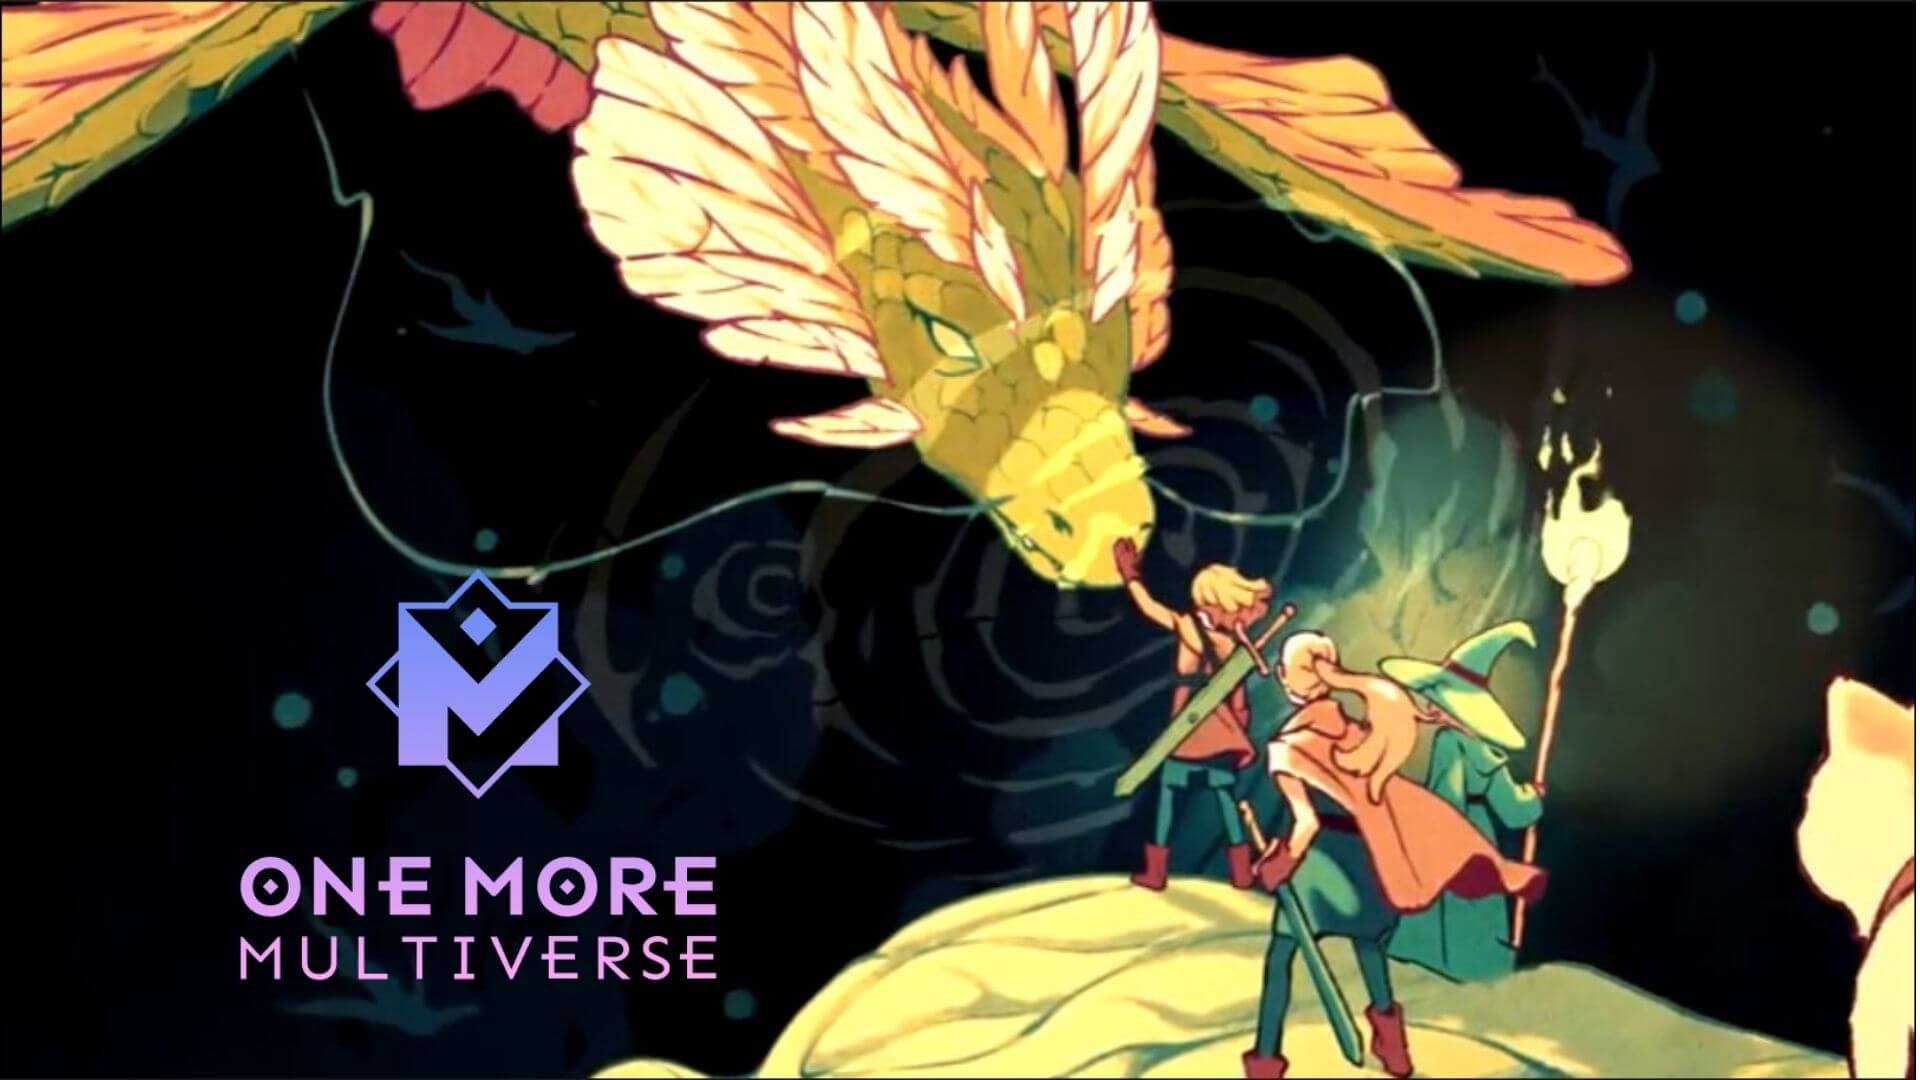 One More Multiverse Launches Beta for Virtual Tabletop RPG Platform